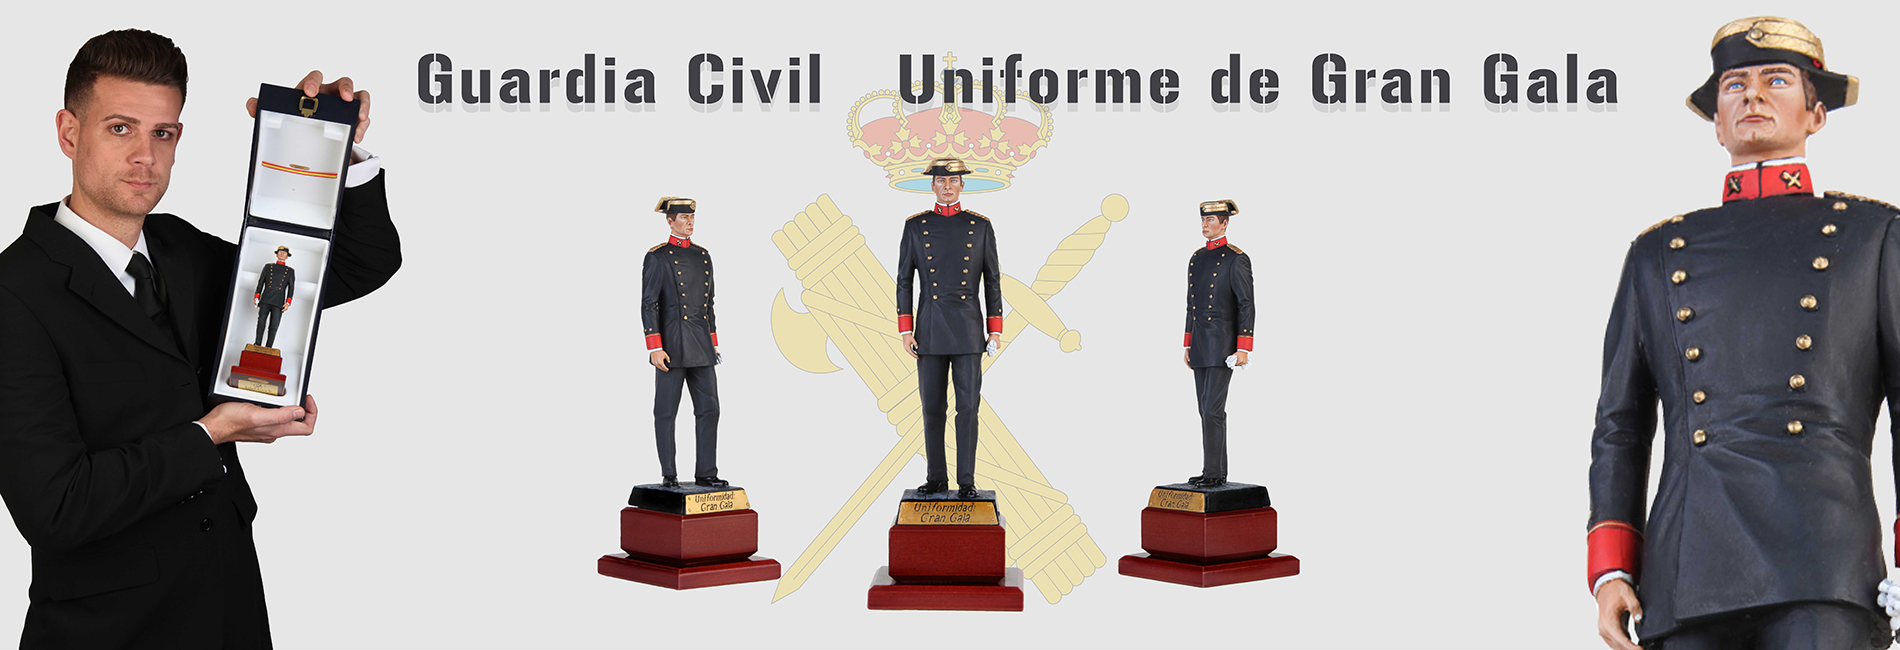 Guardia Civil - Uniforme Gran Gala